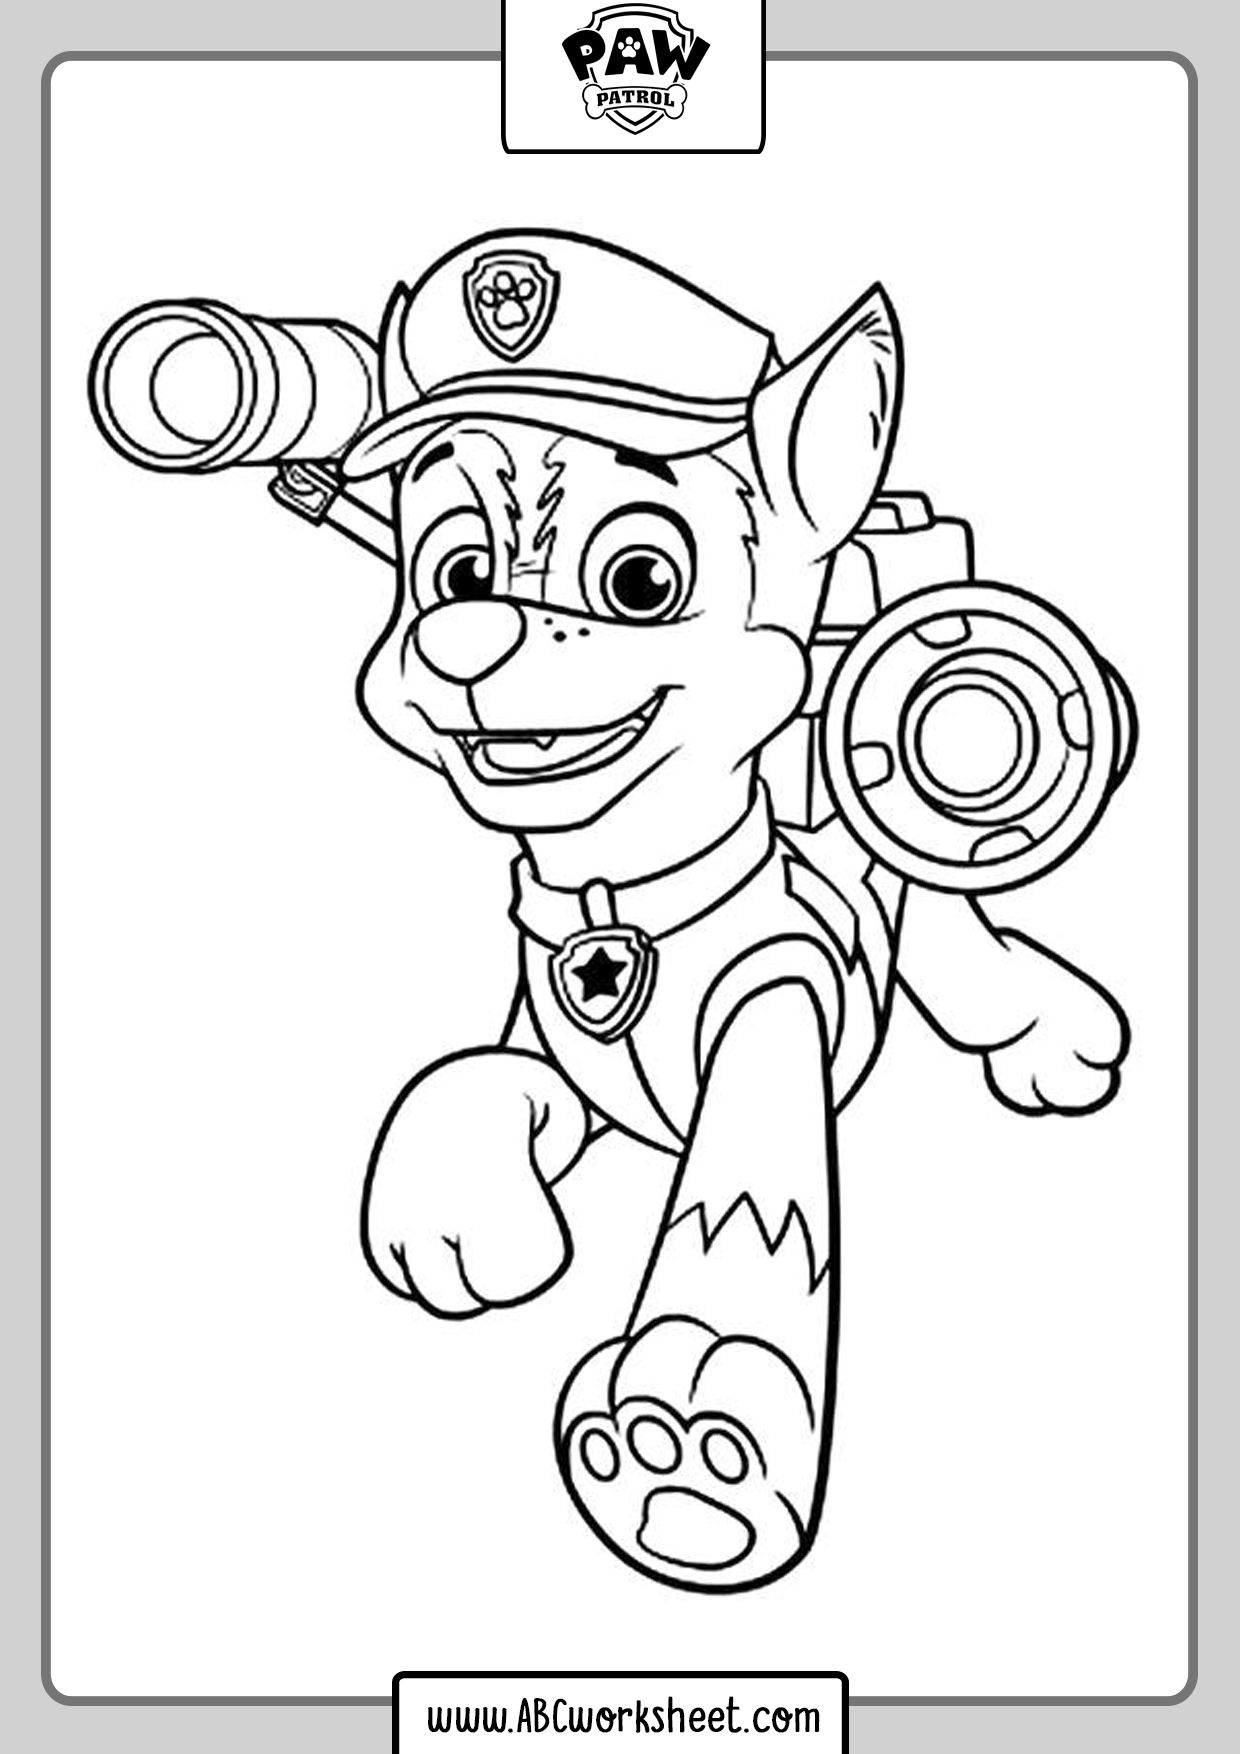 paw patrol characters pj live paw patrol live quotrace to the rescuequot patrol paw characters